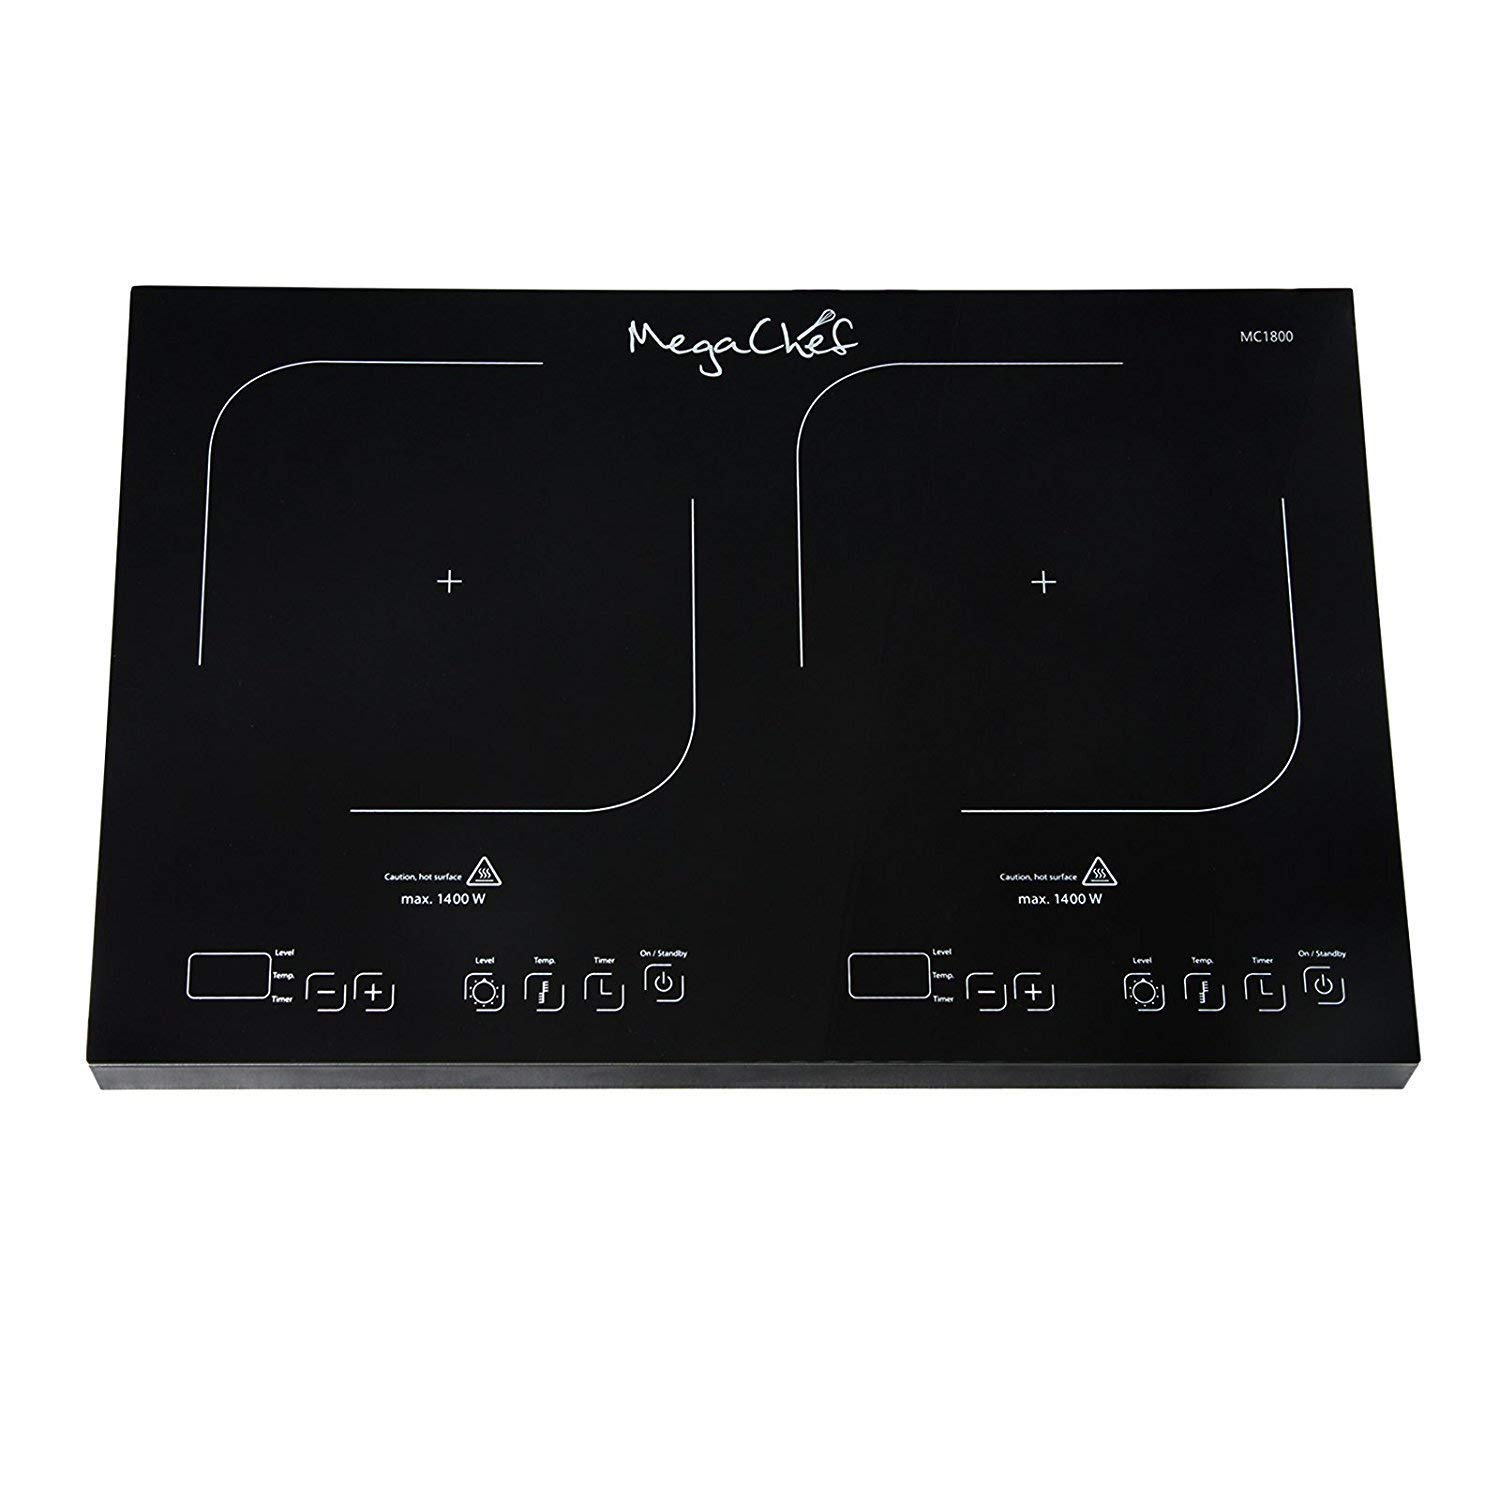 MyEasyShopping Portable Dual Induction Cooktop, Portable Dual Burner Power sharing Induction Cooktop, Portable Dual Induction Cooktop Burner Power sharing New Cook tops Led 140°F 430°F Auto Shut Off